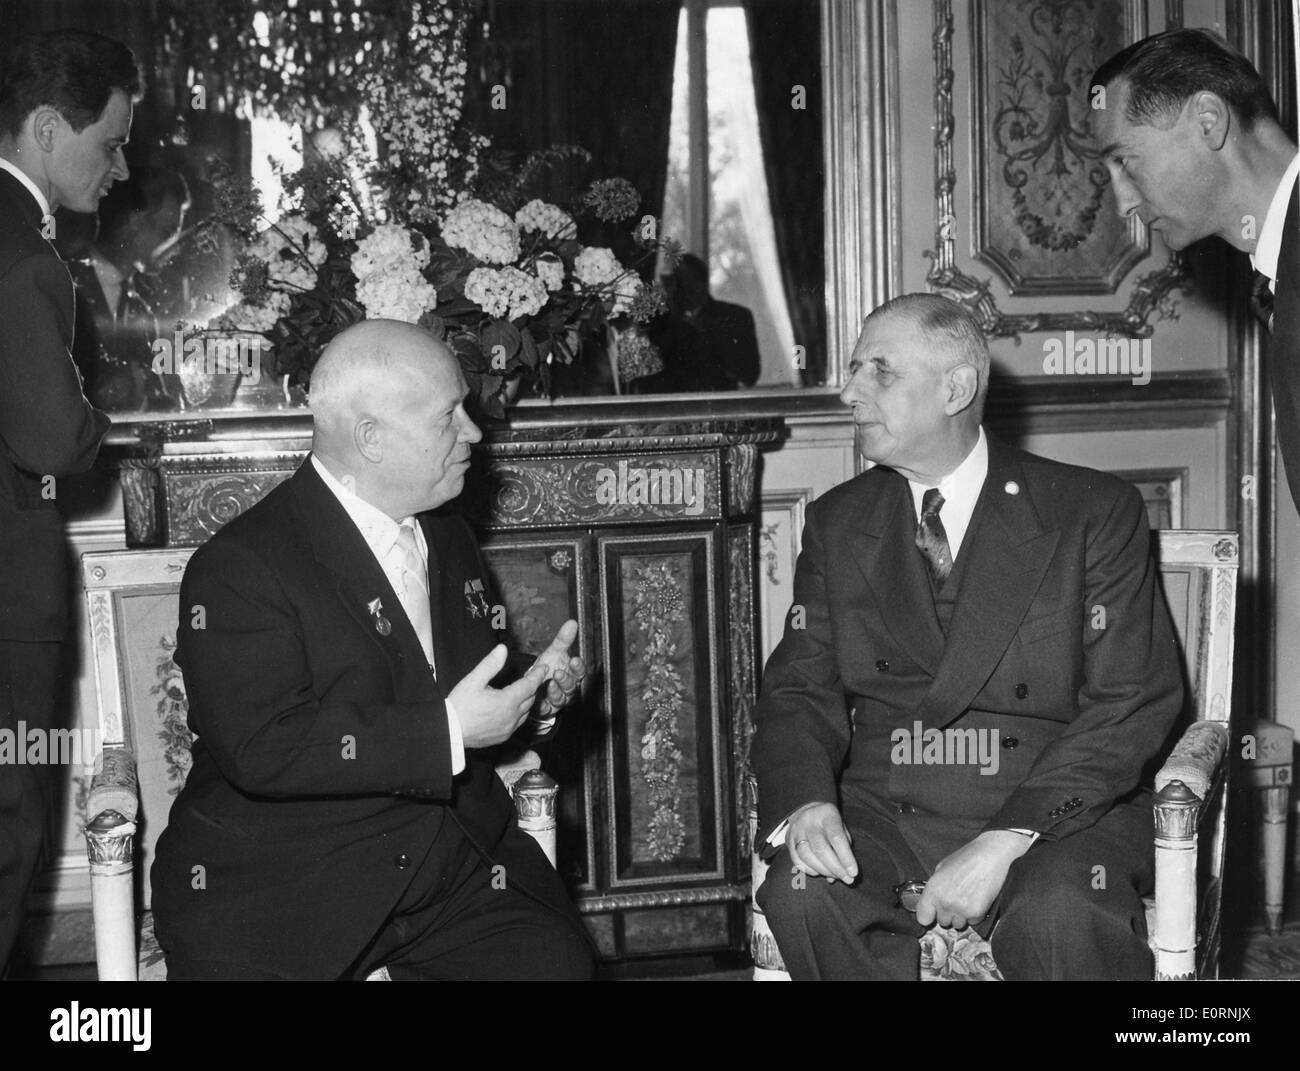 President of France CHARLES DE GAULLE and Premier NIKITA KHRUSHCHEV at the Elysee Palace, Fance. - Stock Image